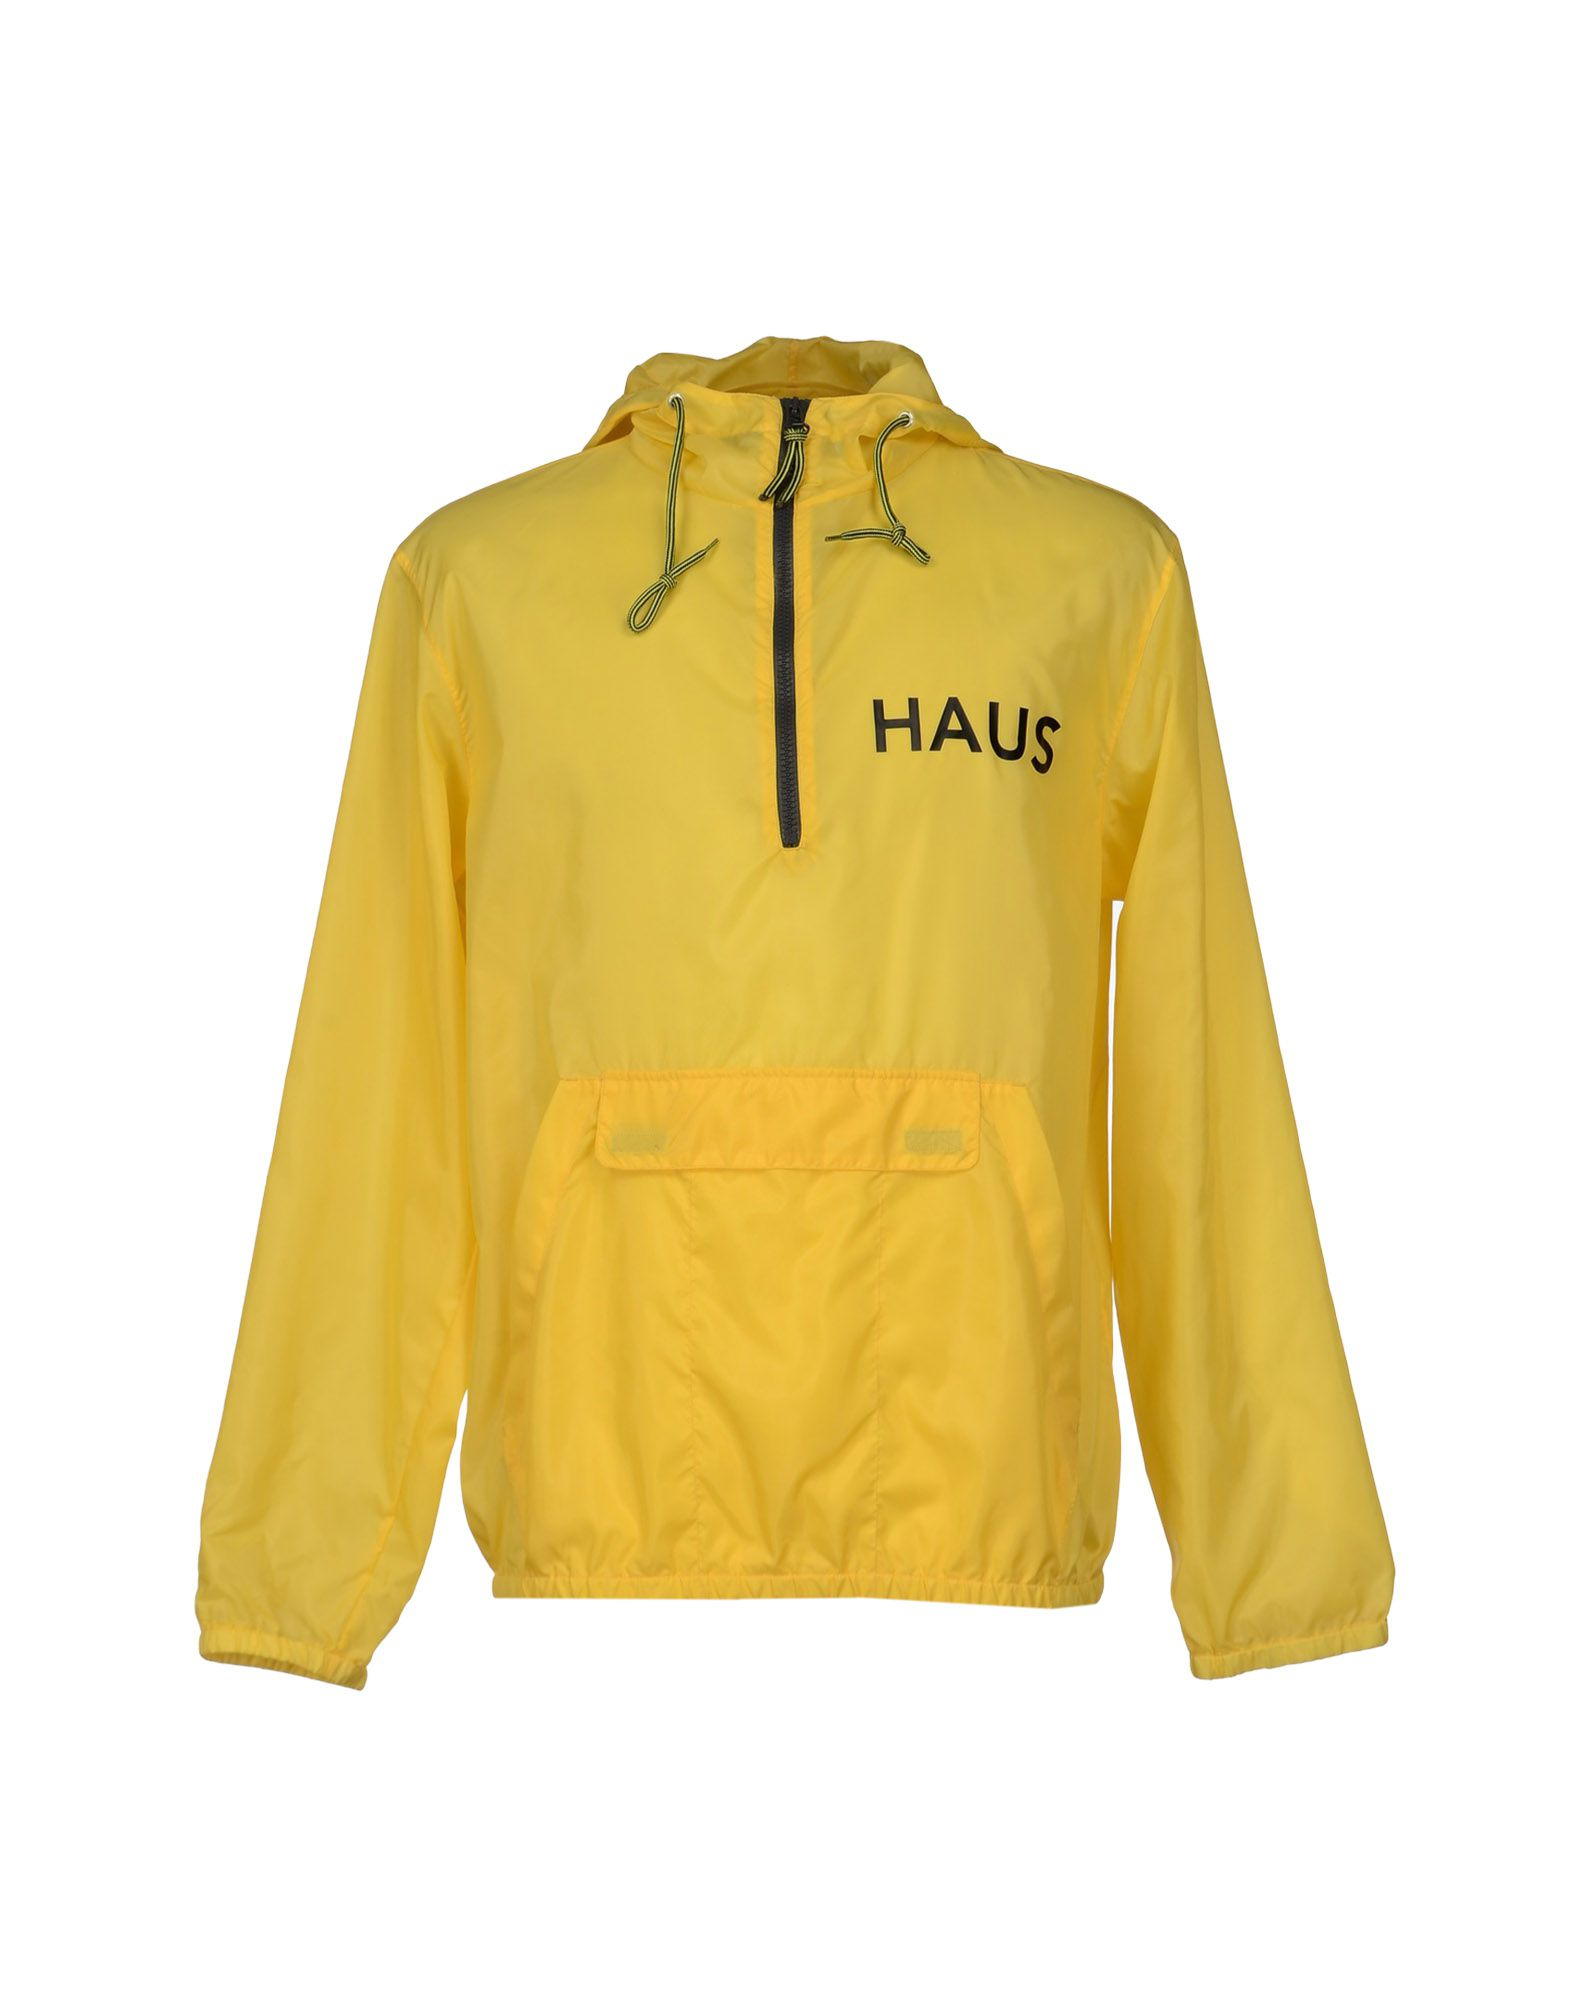 Haus By Golden Goose Deluxe Brand Jacket In Yellow For Men